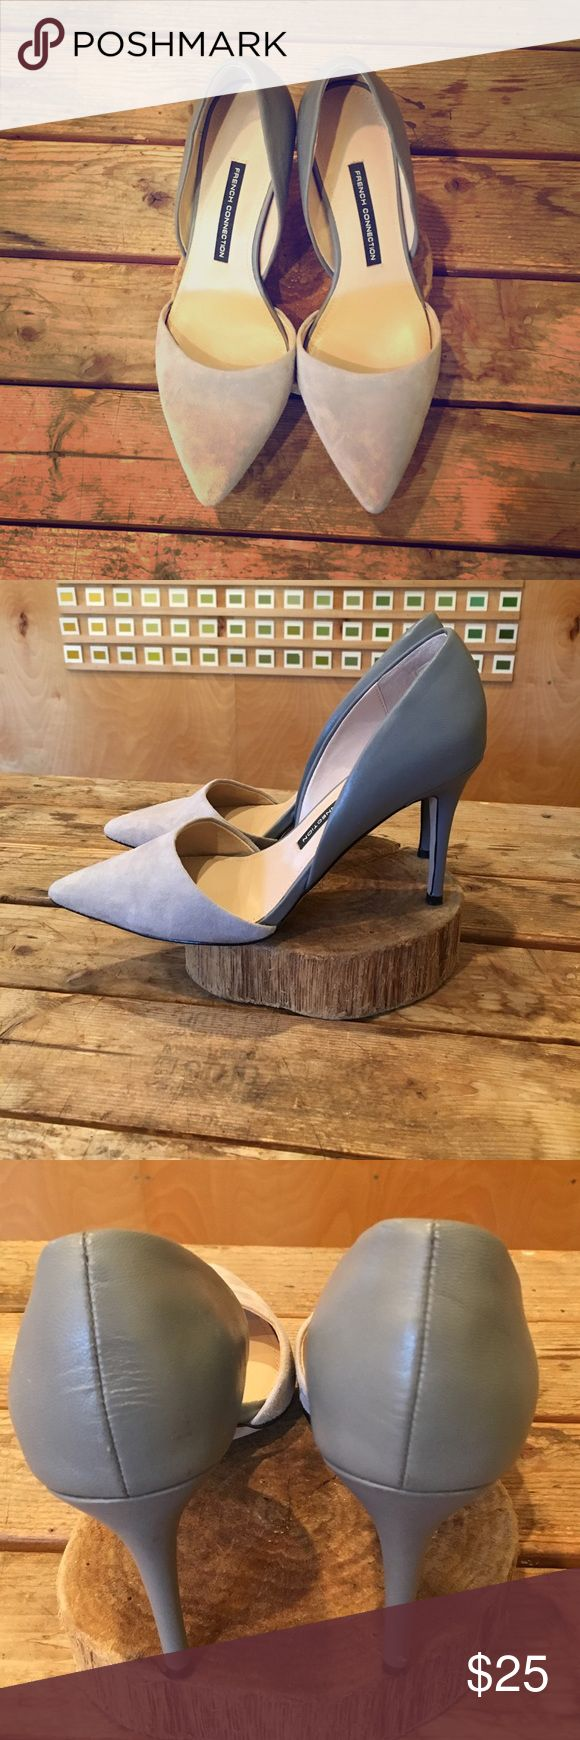 French Connection Two Toned Heels Gorgeous in gray! Stunning two-toned French connection shoes, slight wear on back of heels as shown in photos, otherwise amazing shape and ready to rock your next night out! French Connection Shoes Heels